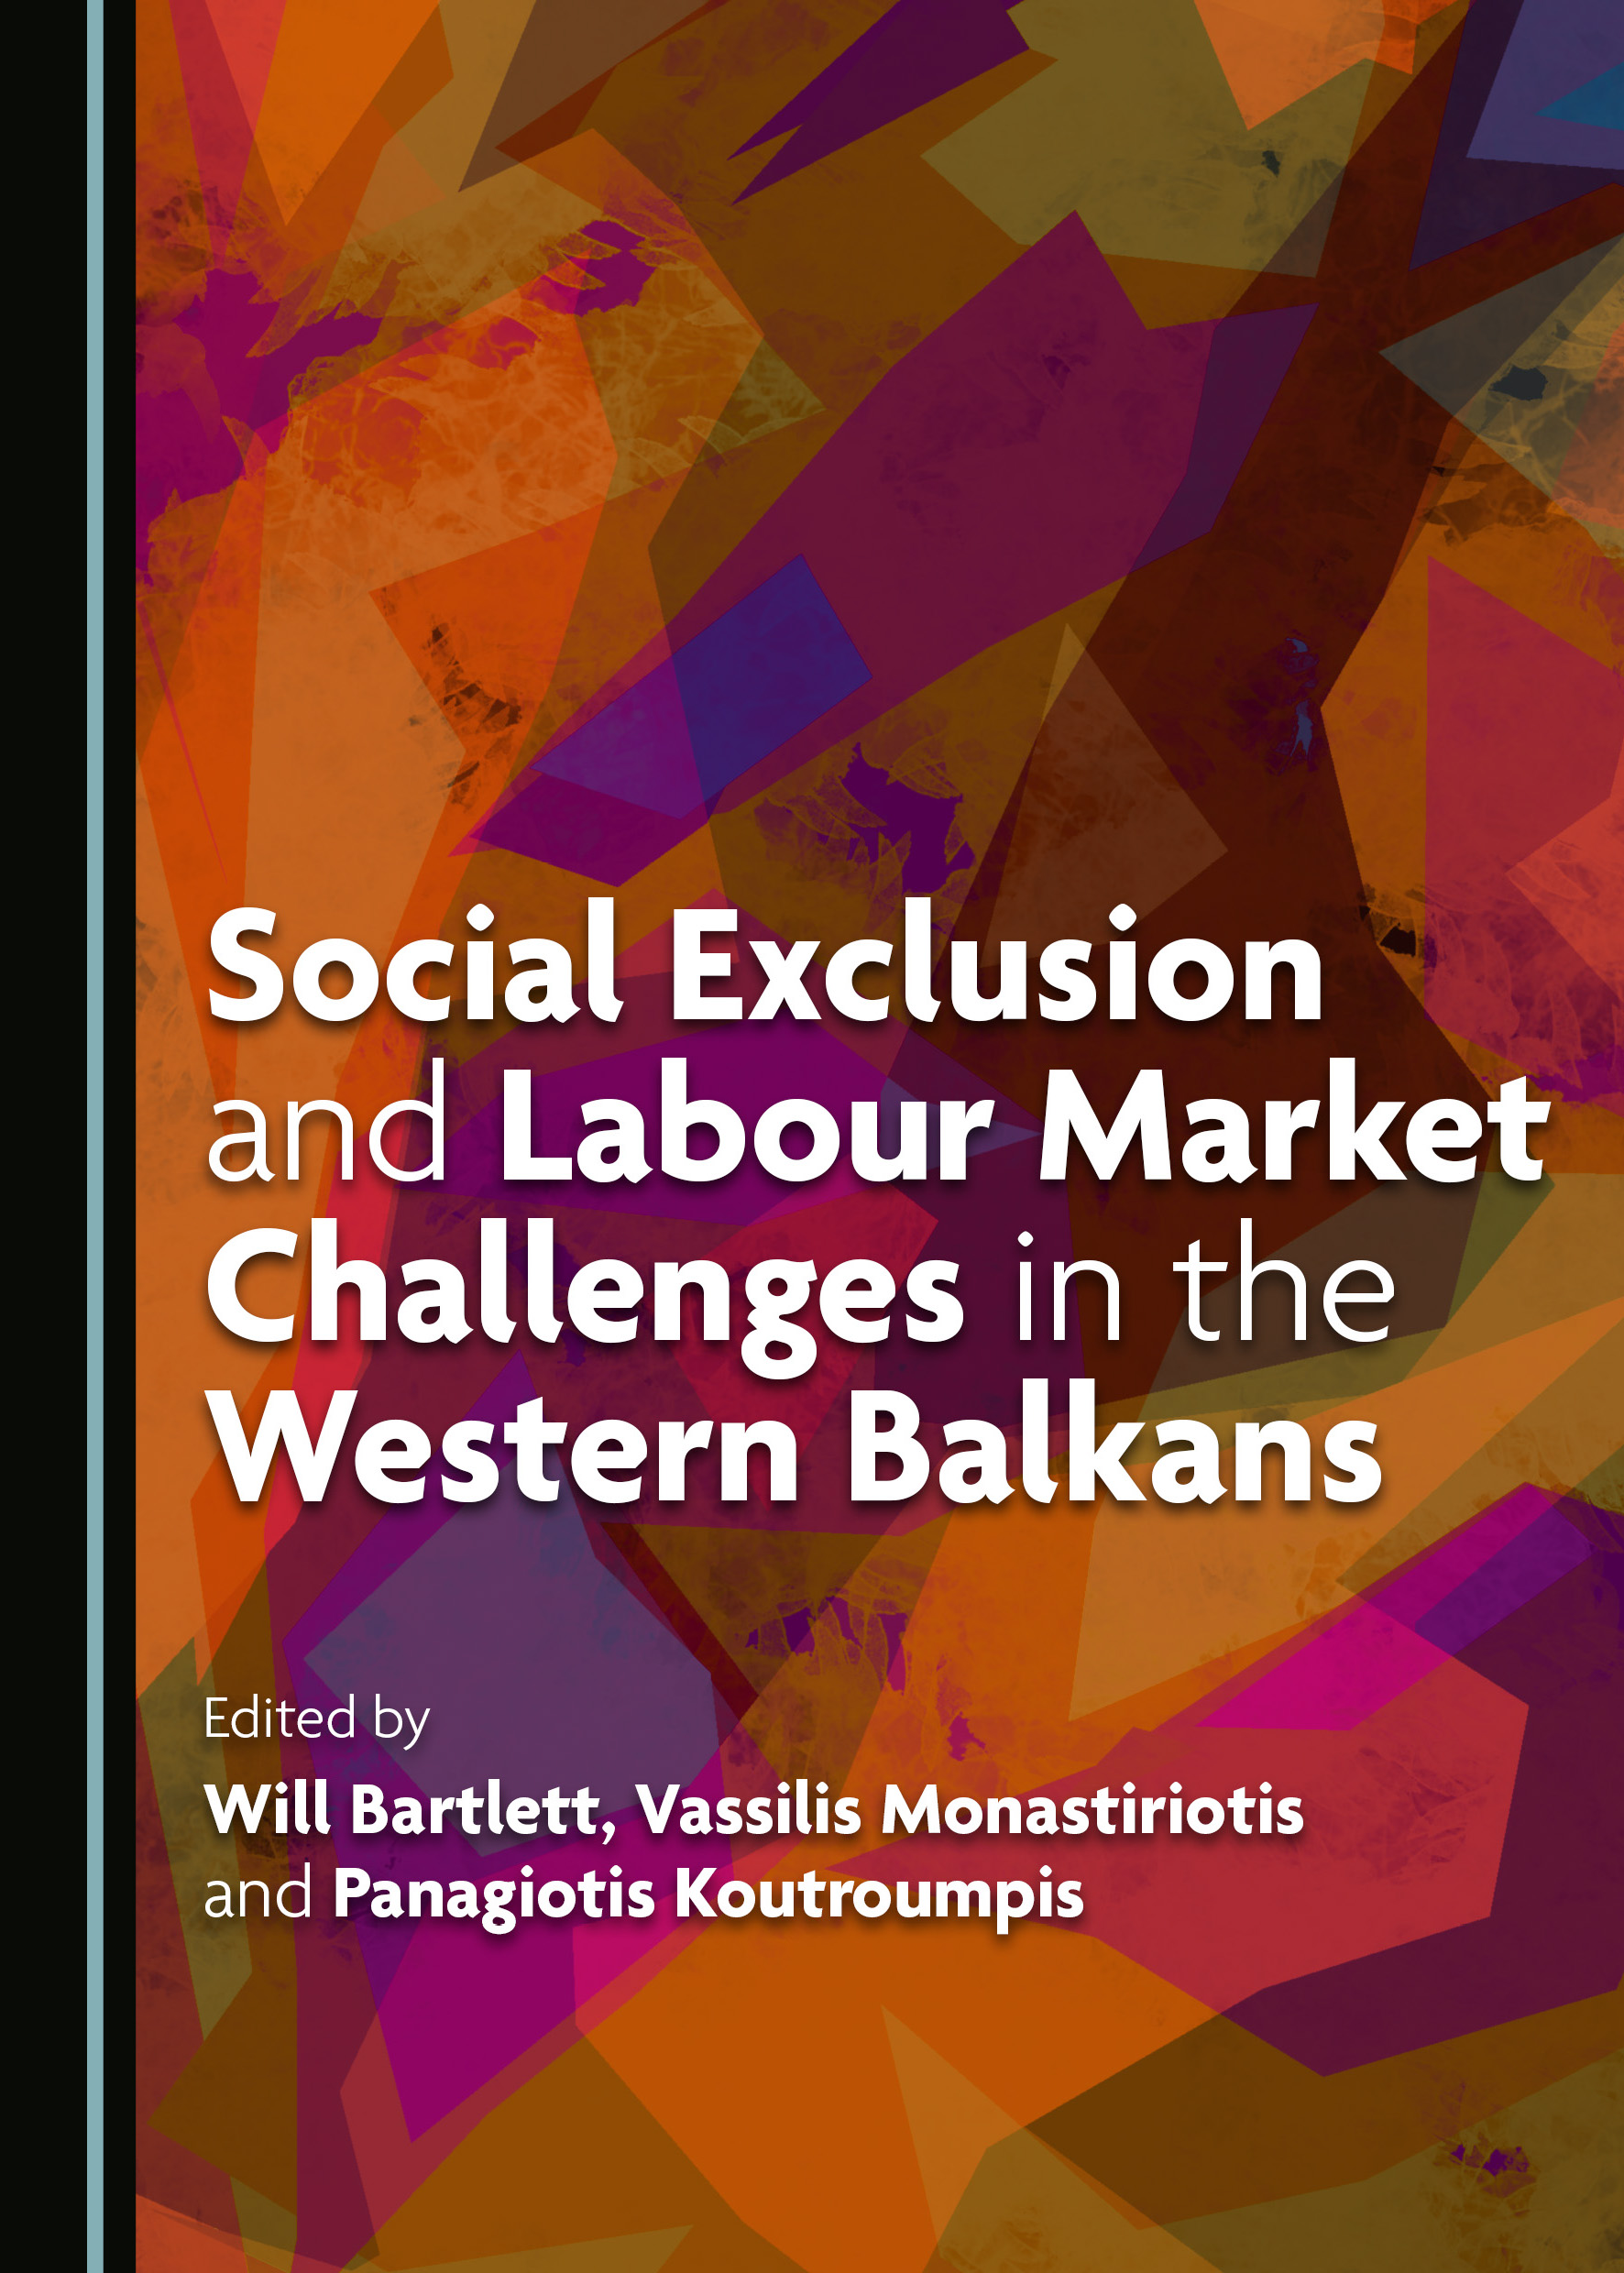 Social Exclusion and Labour Market Challenges in the Western Balkans